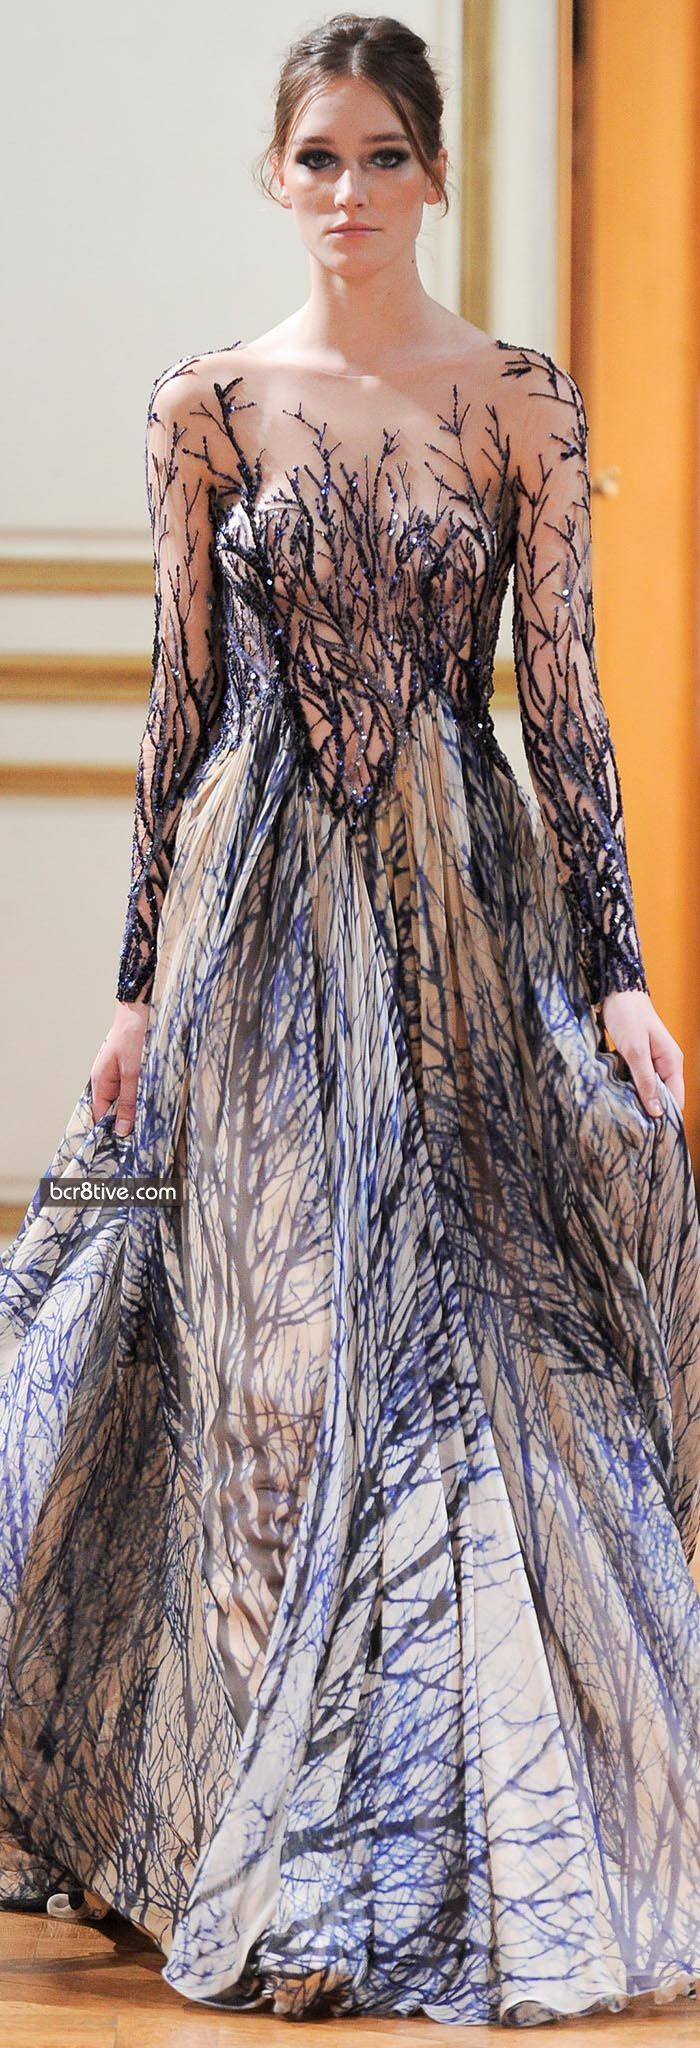 Not vintage but stunning...Zuhair Murad Fall Winter 2013-14 Haute Couture Collection #faerie